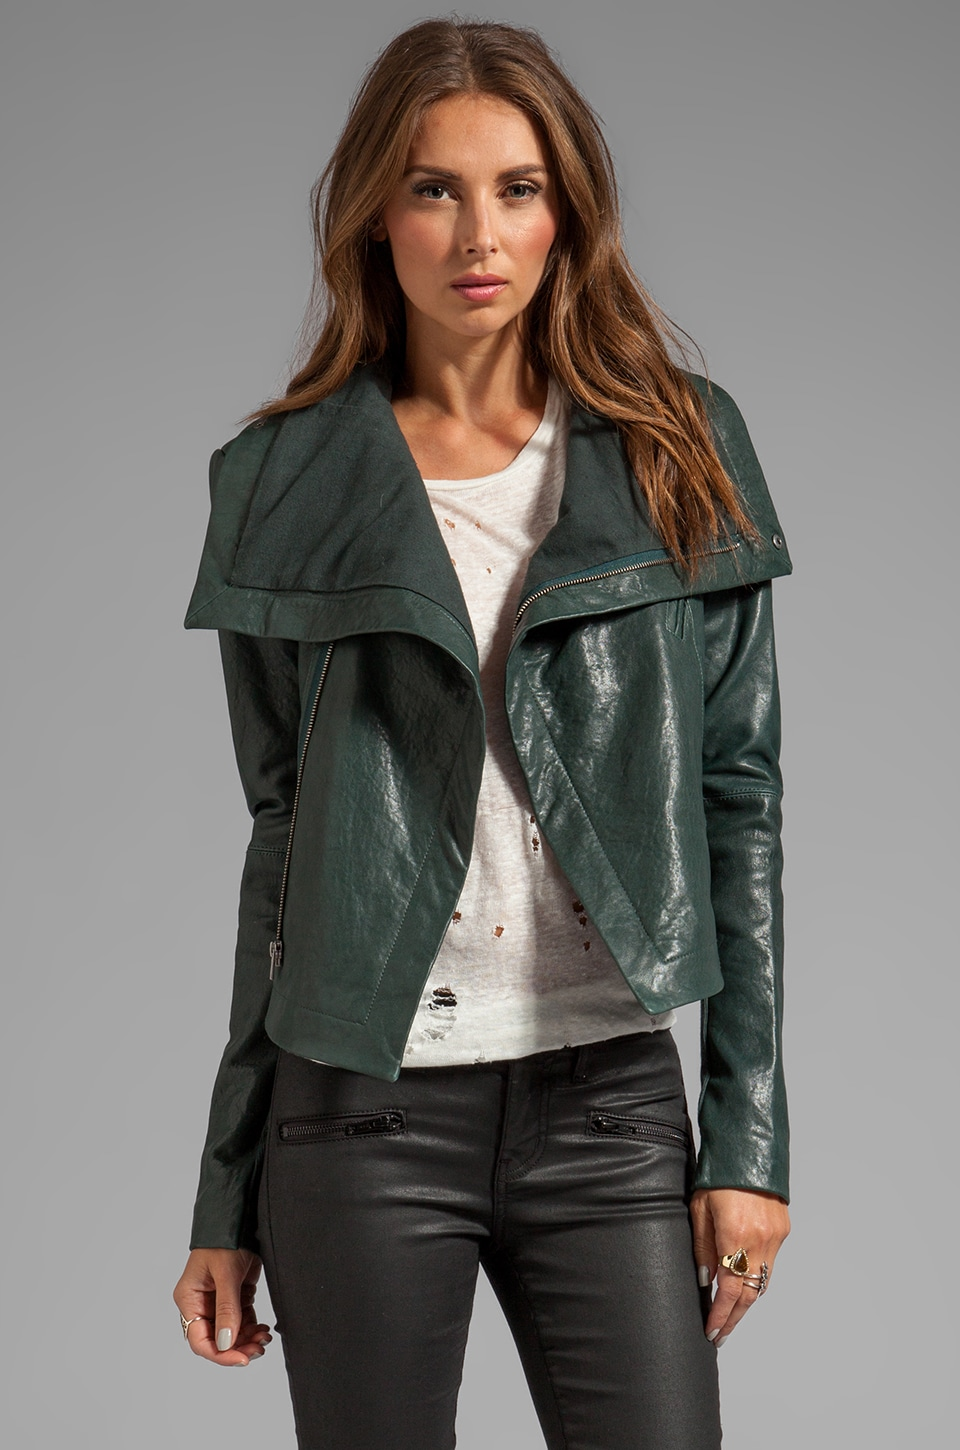 VEDA Max Classic Jacket in Sage